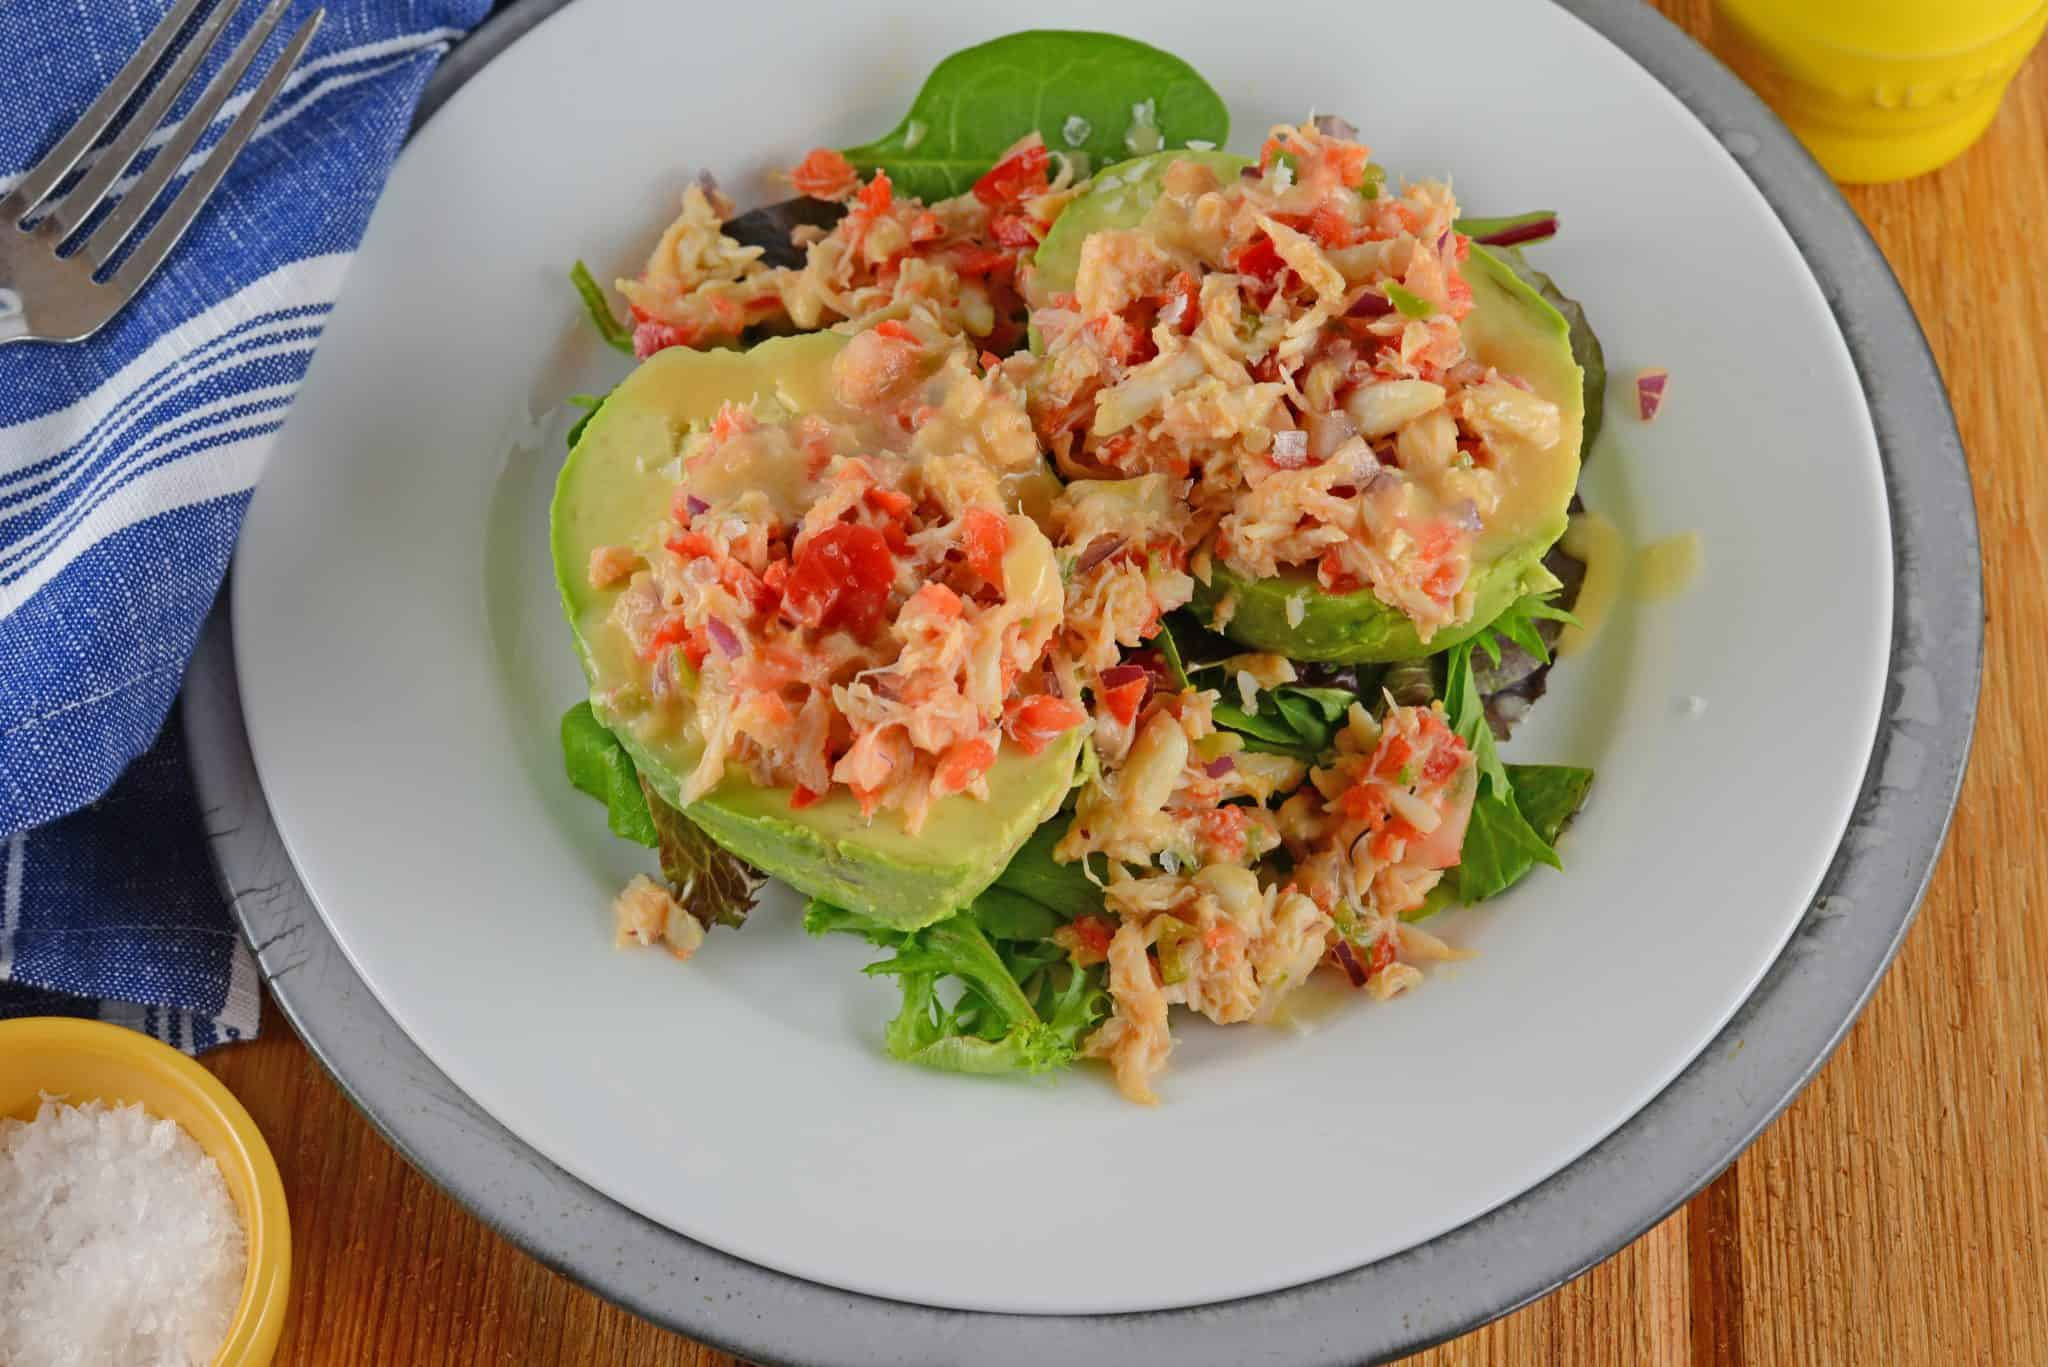 Crab and Avocado Salad is a simple and healthy salad. Buttery lump crab with creamy avocado, red onion, jalapeno and bell peppers topped with Miso Dressing.